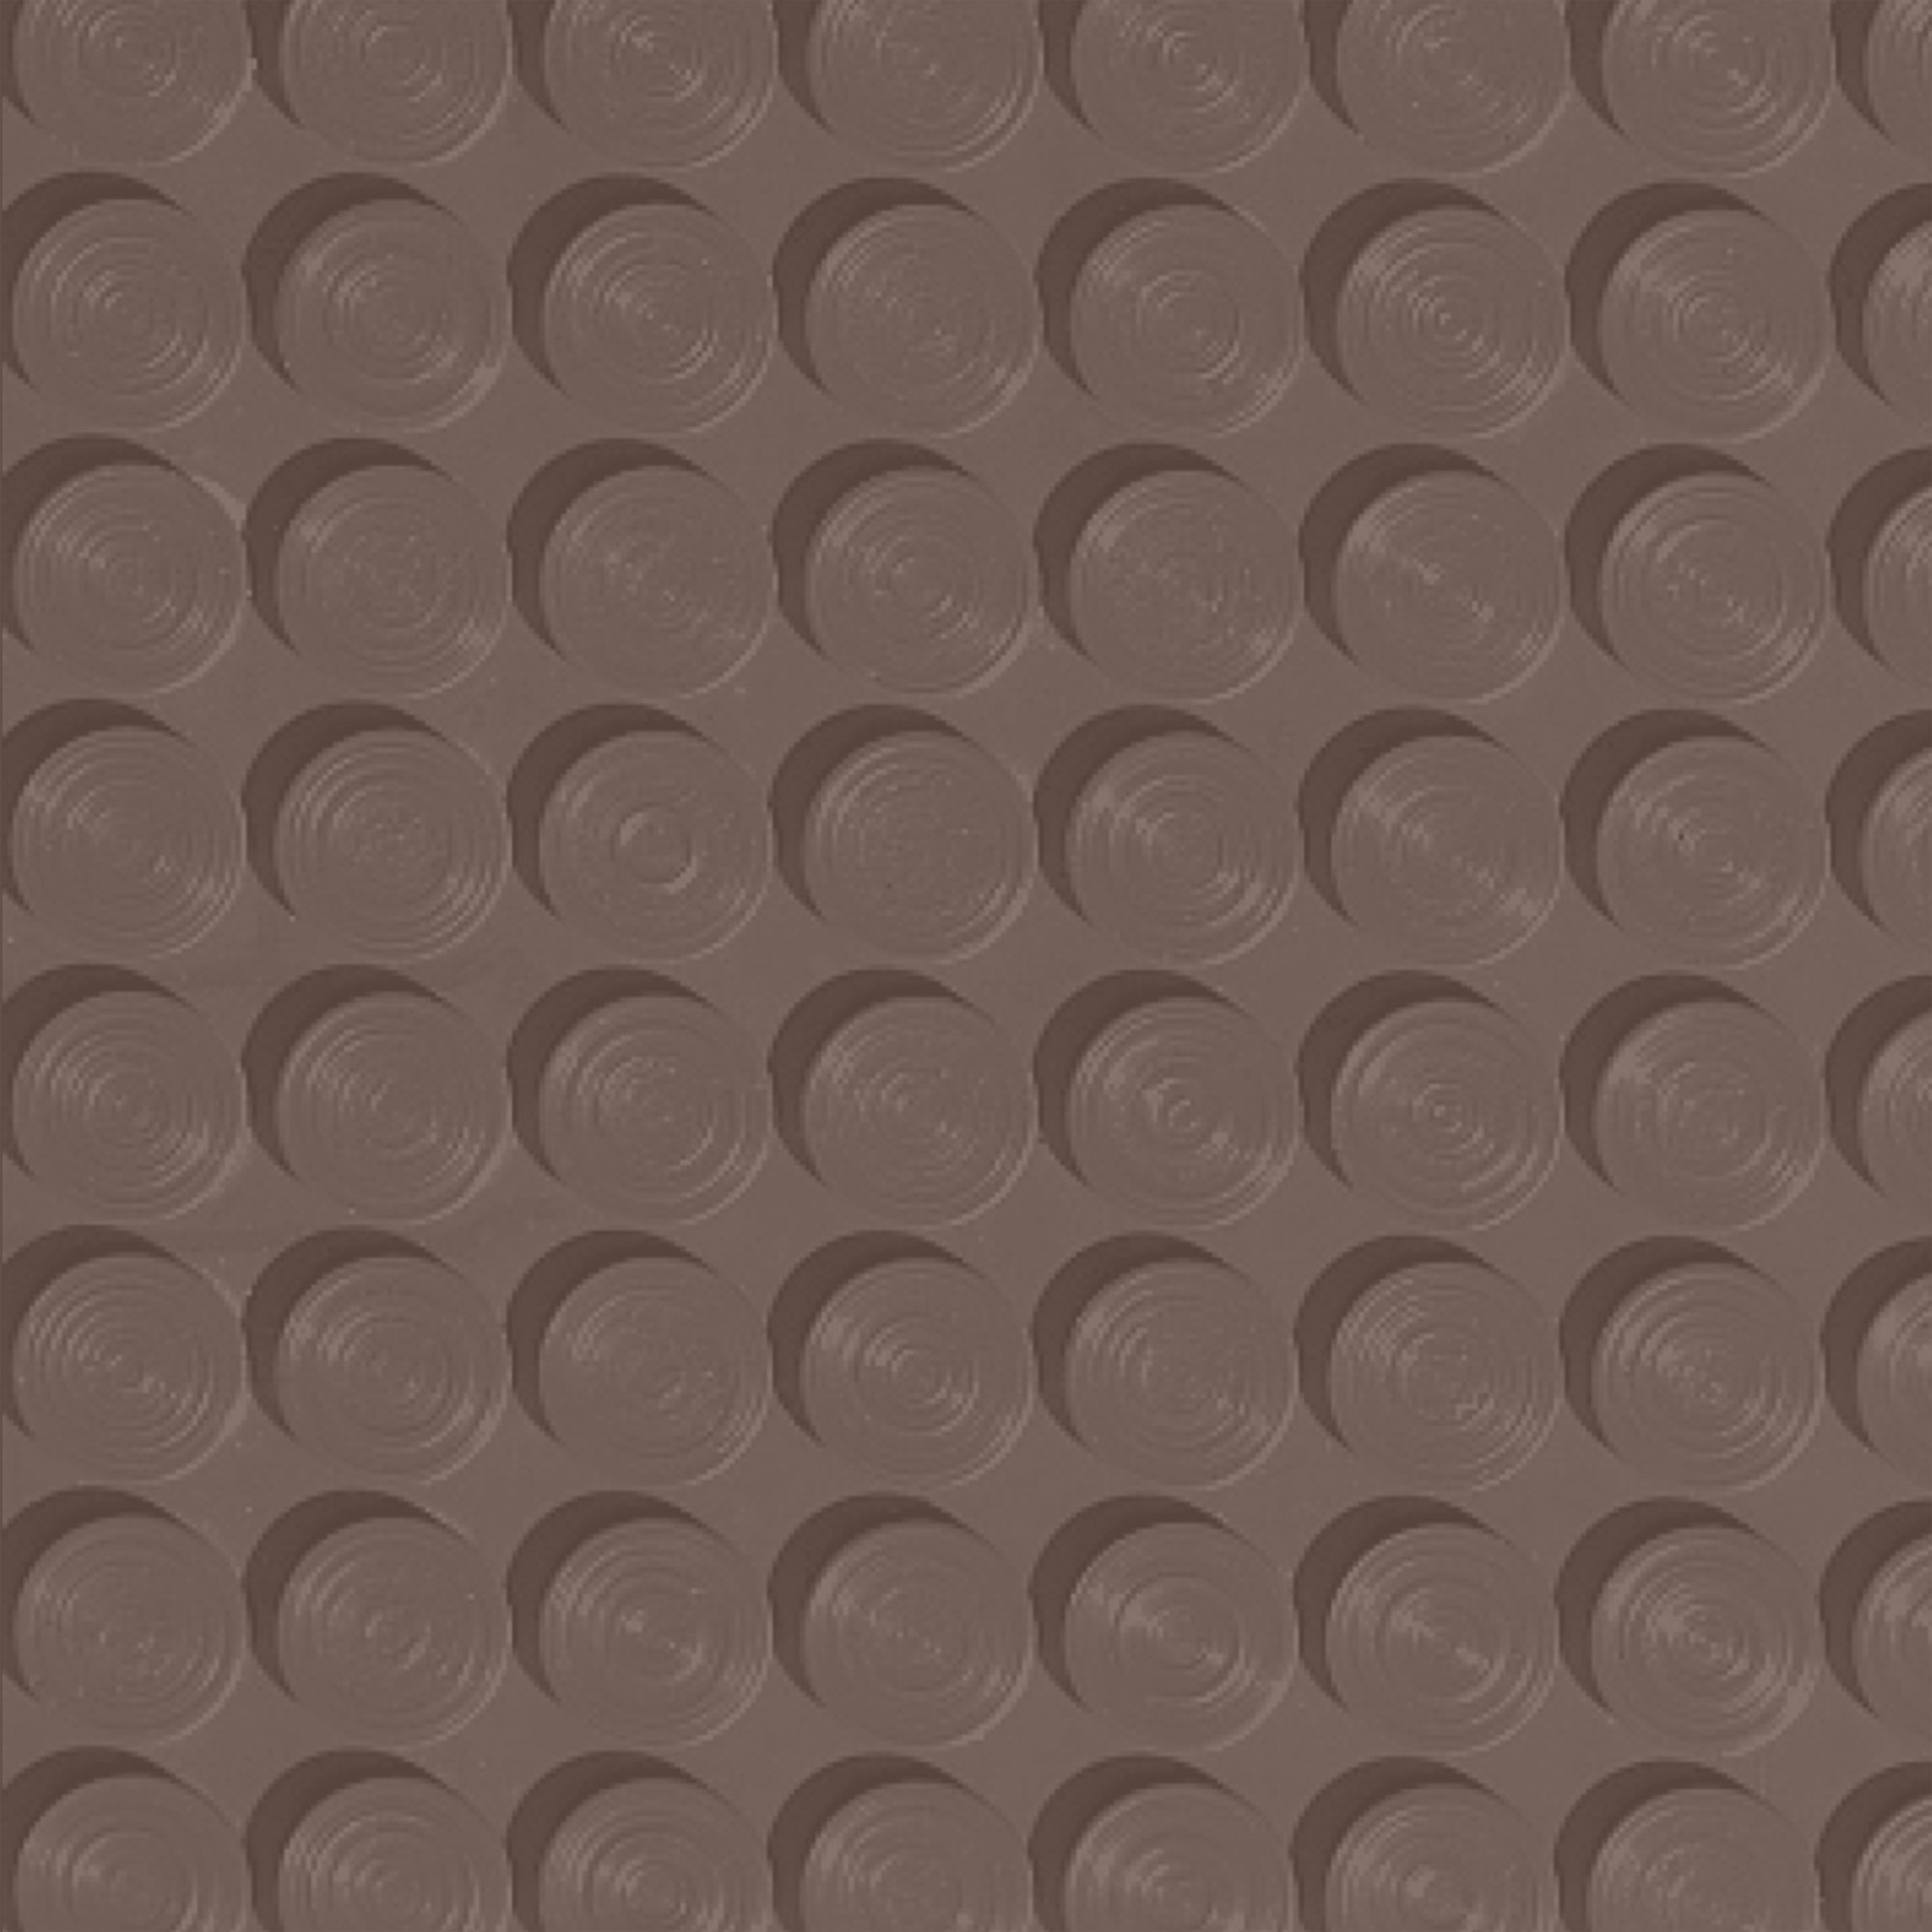 Roppe Rubber Tile 900 - Lug Back Vantage Design (LB996) Toffee LB996182